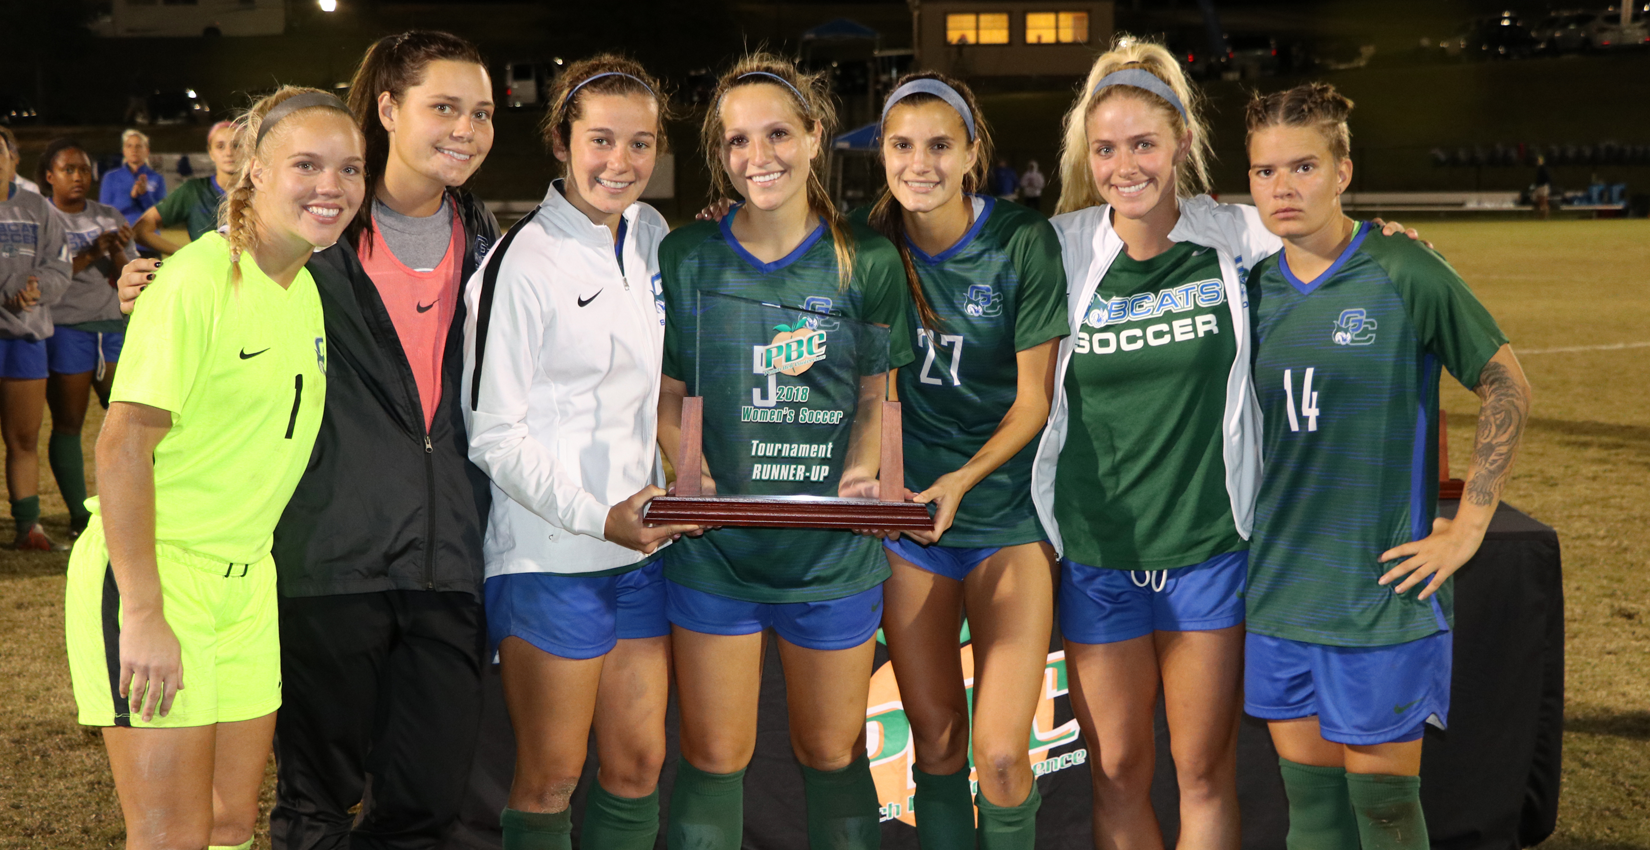 Bobcat Seniors with PBC Runner-Up trophy